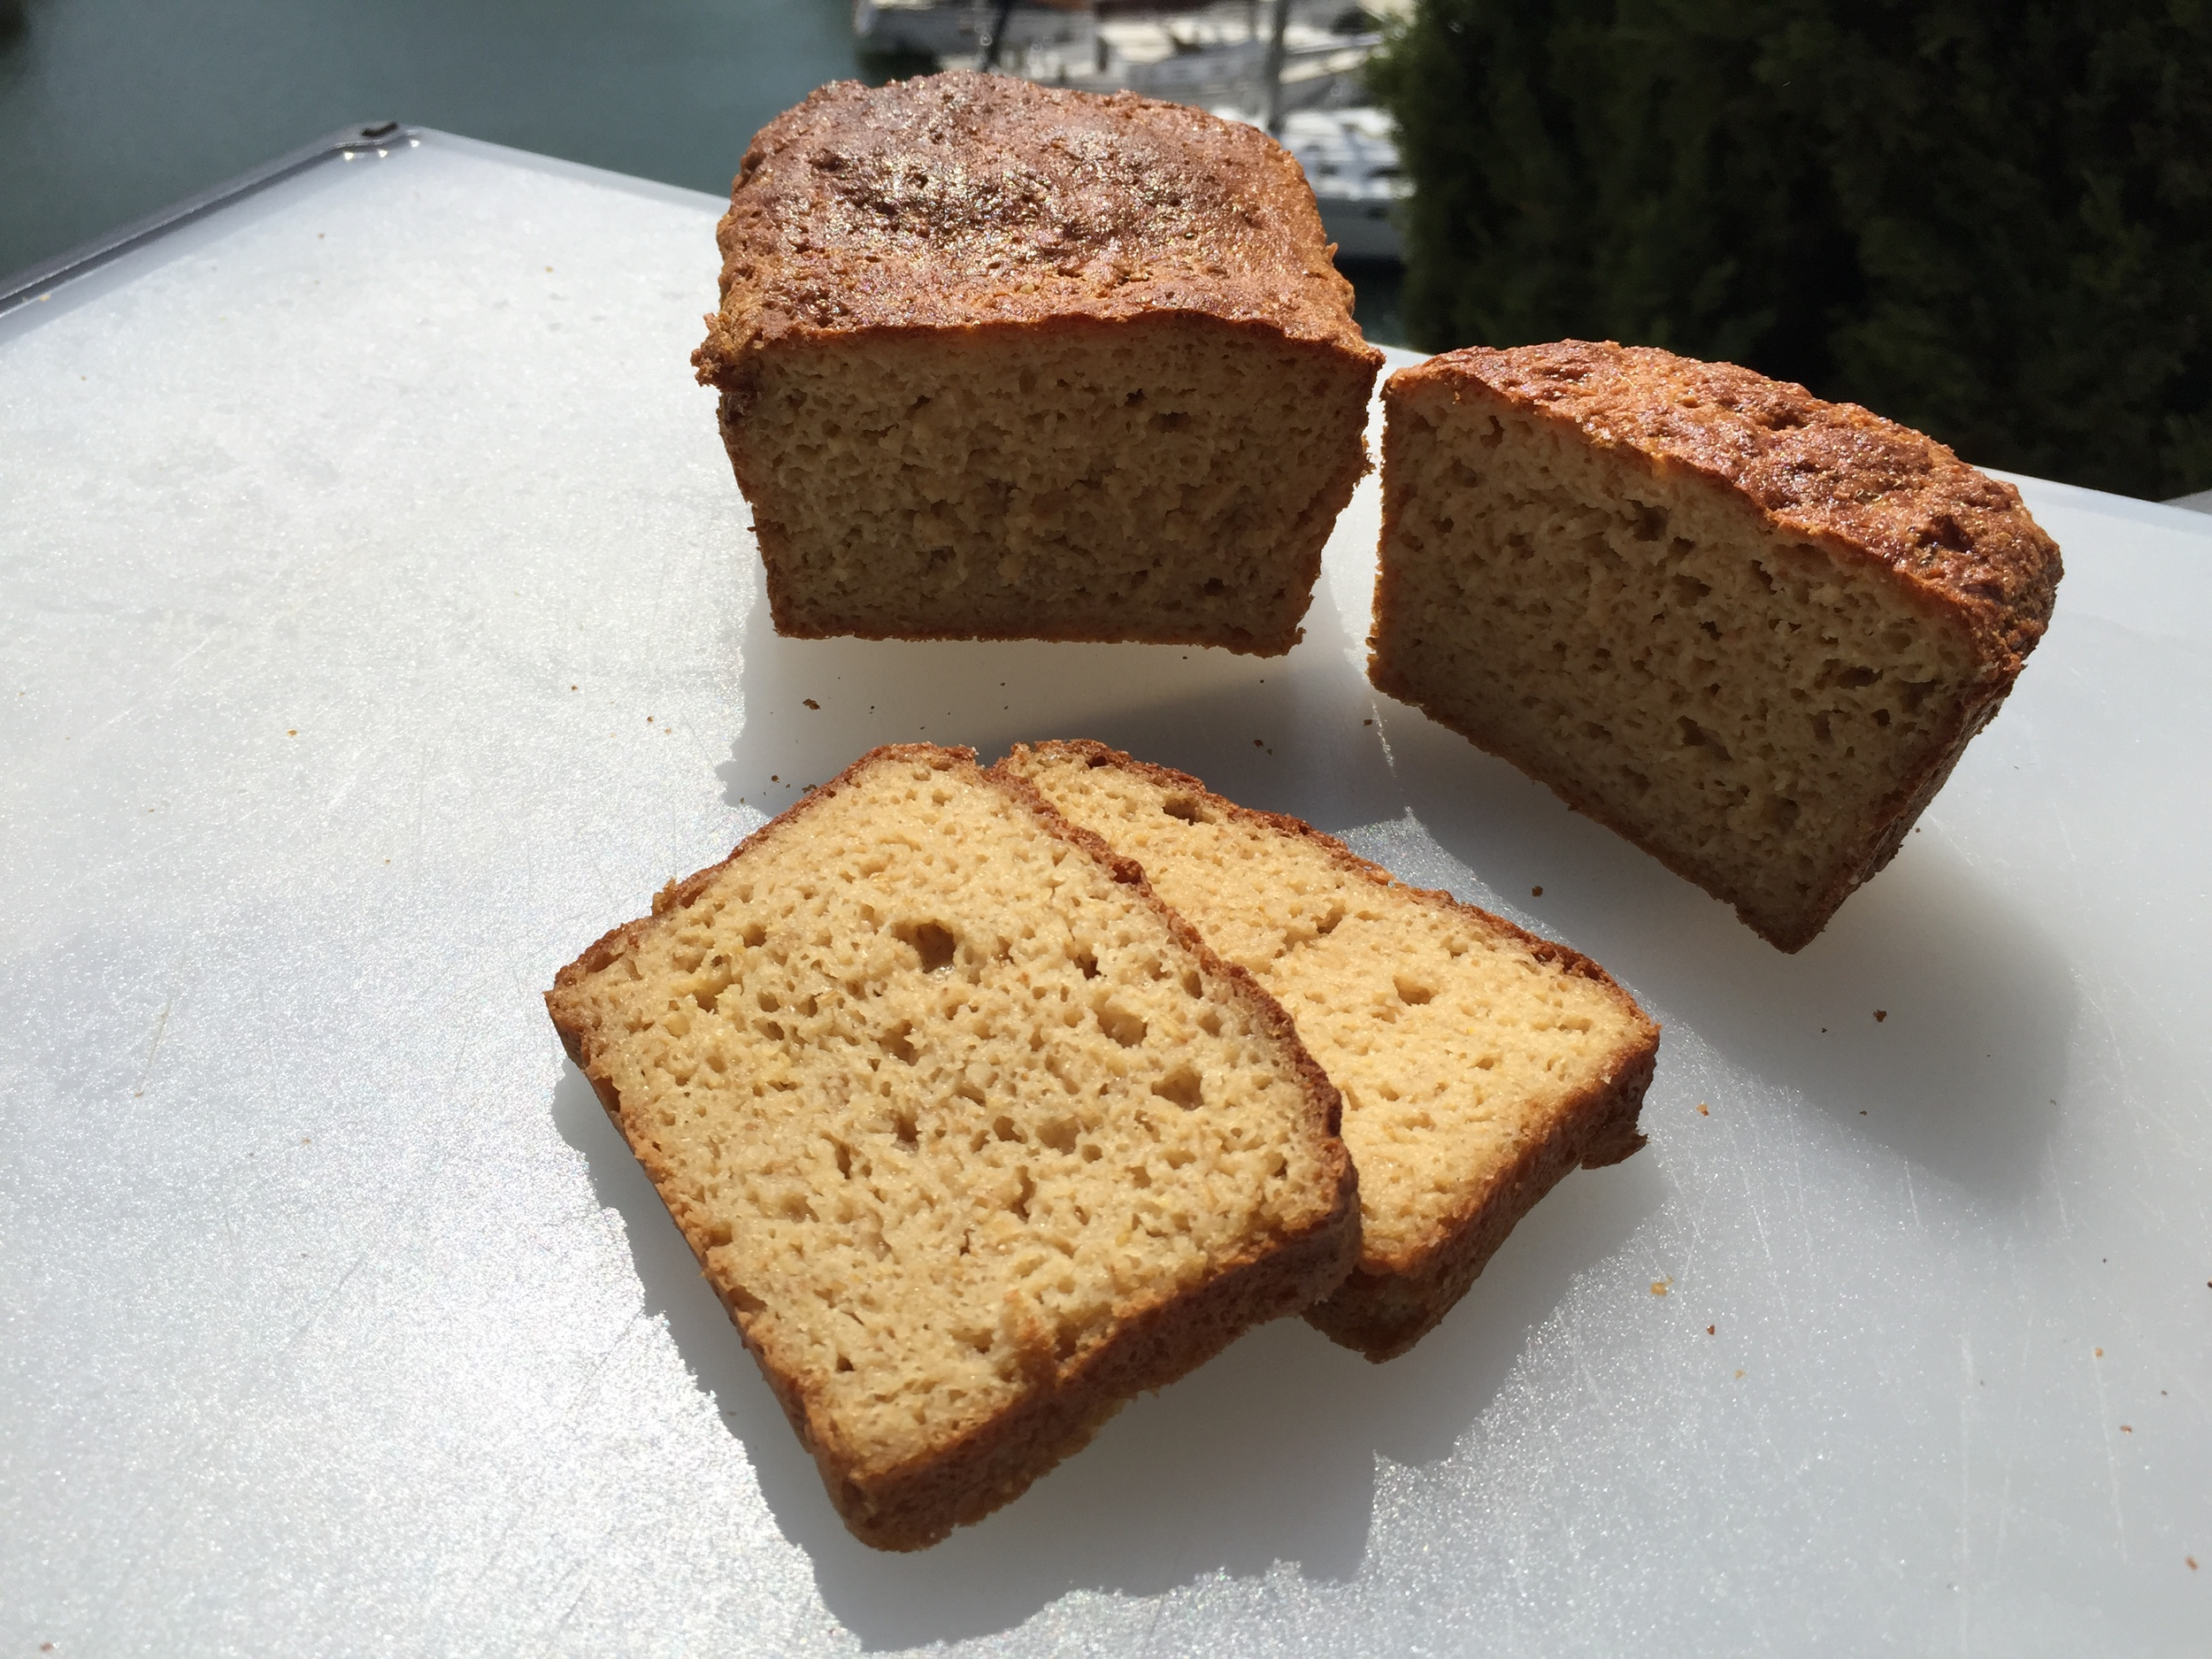 Unlike anything on the market, we don't use apple cider vinegar. Our breads are amazing and tasty without that lingering vinegar after-taste and smell.